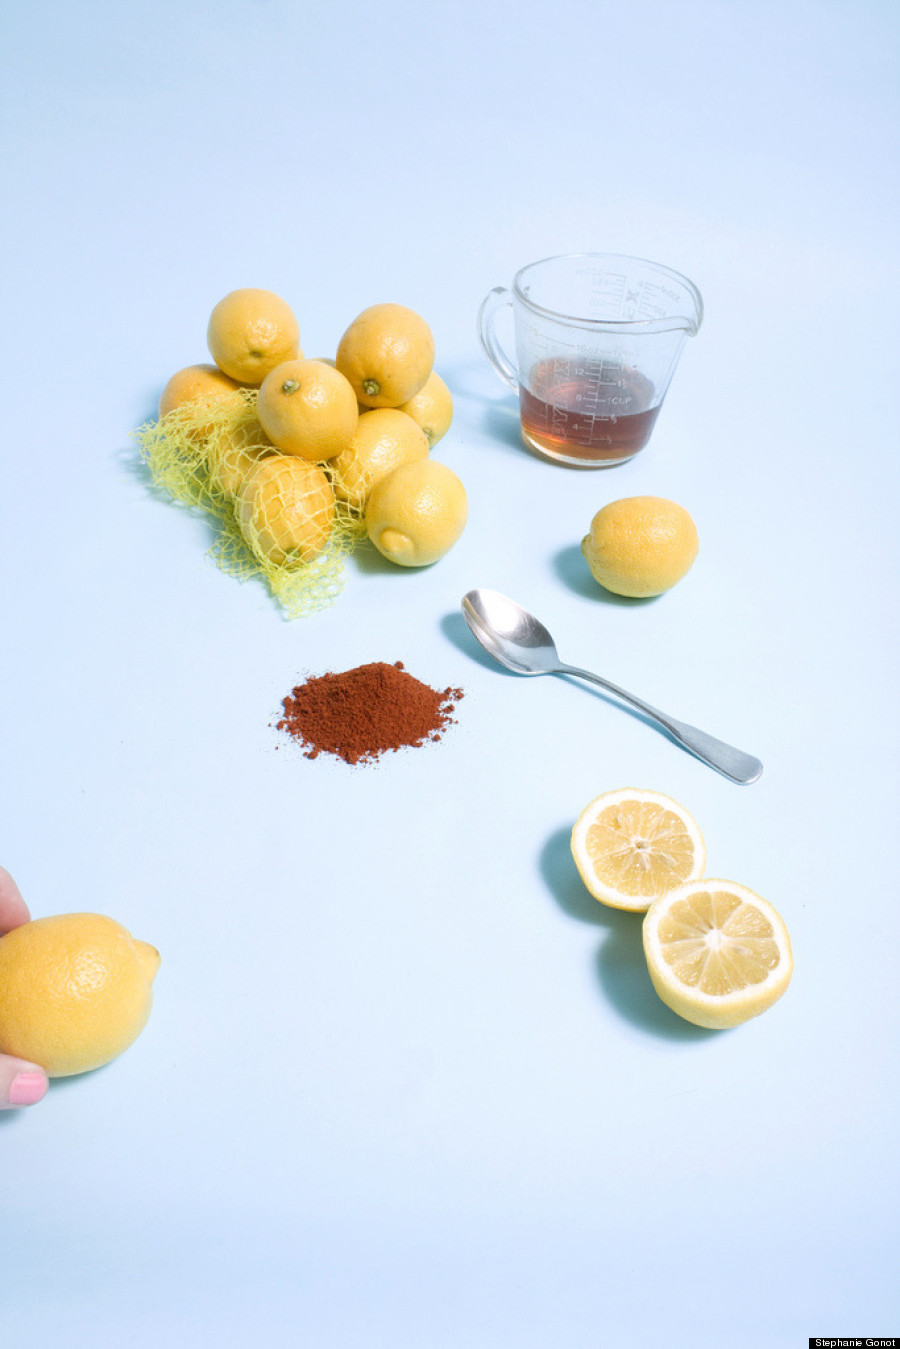 I Lost 22 Lbs in 2 Weeks With This Weird Lemon Diet